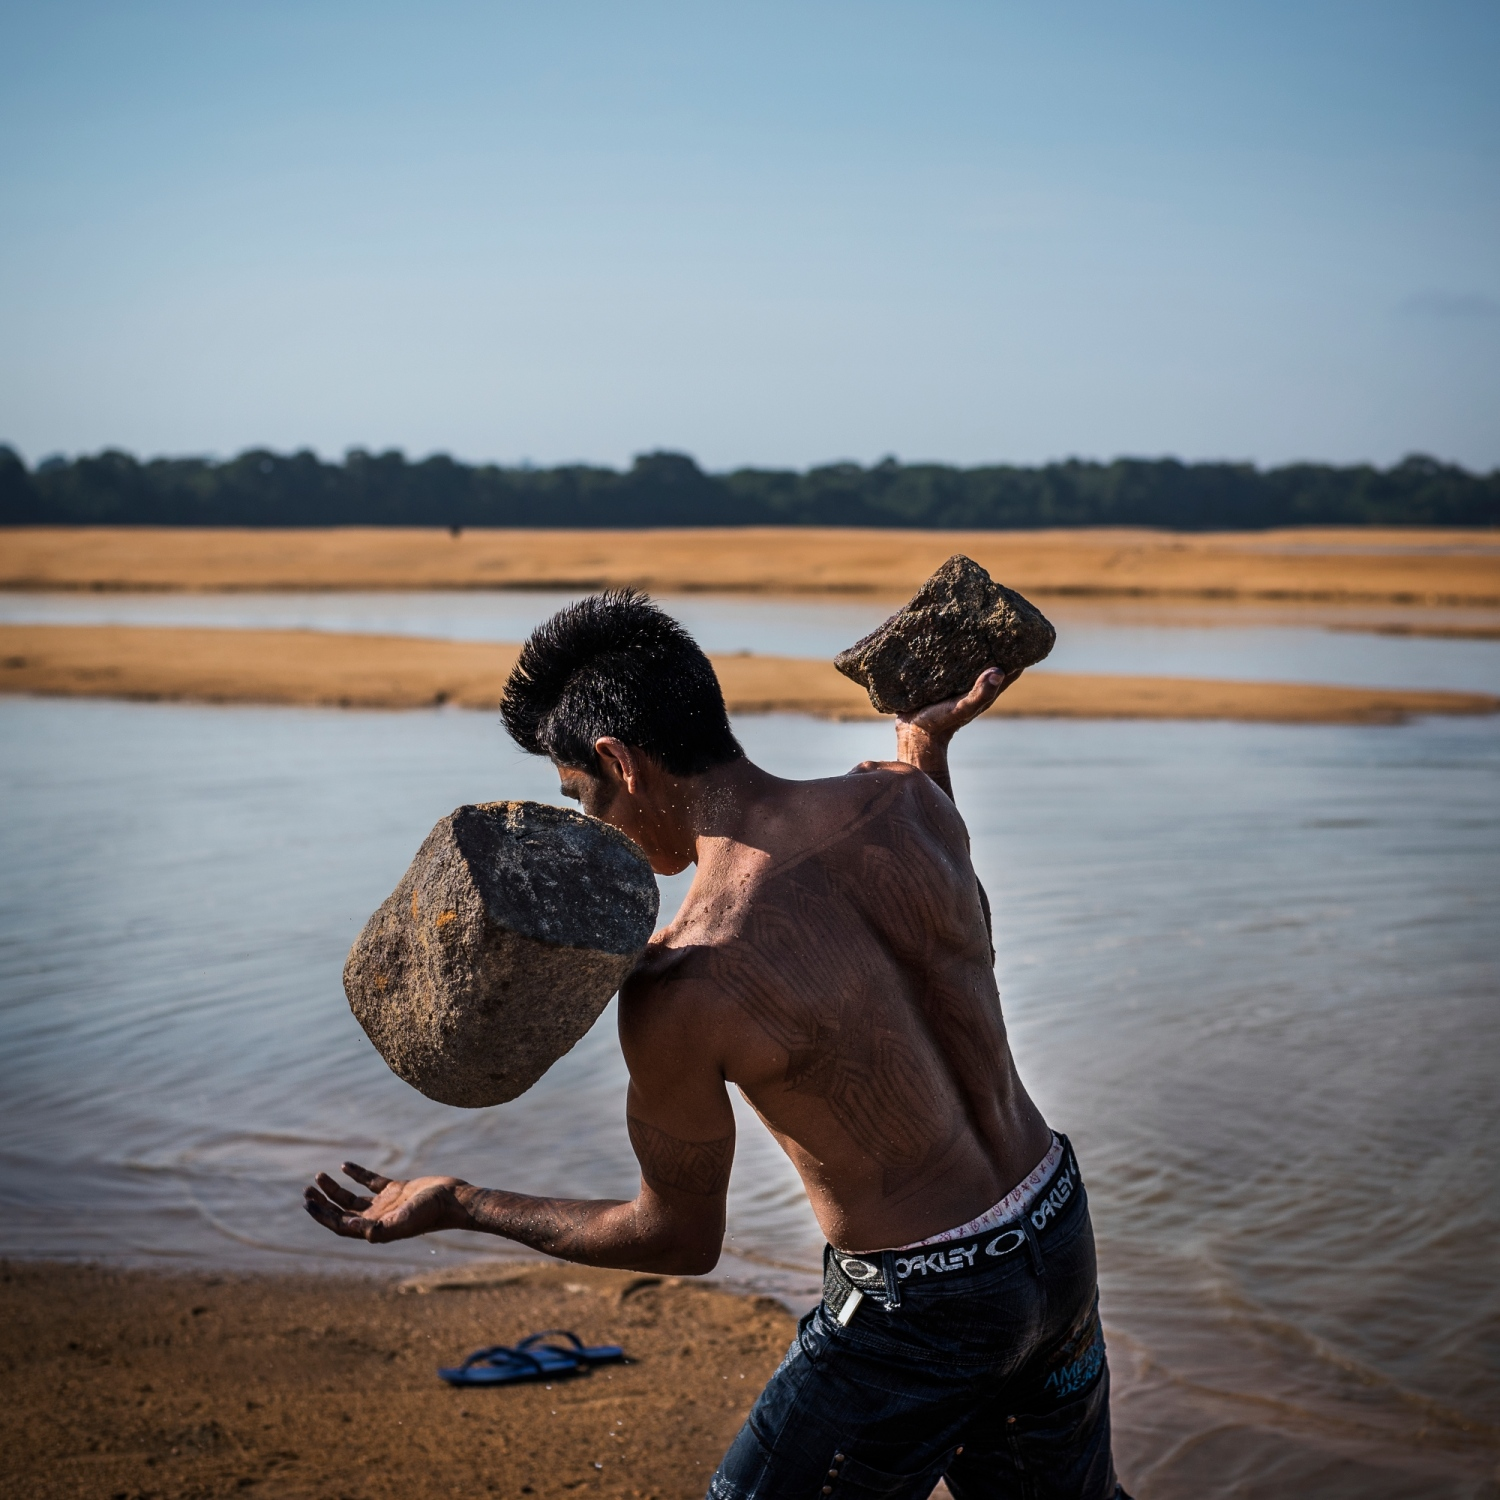 November 26, 2014. A member of the Munduruku indigenous tribe carries rocks on a sandbar on the Tapajos River in protest against plans to construct a series of hydroelectric dams in in Para State, Brazil. The tribe members used the rocks to write 'Tapajos Livre' (Free Tapajos) in a large message in the sand in an action in coordination with Greenpeace. After years of fighting, the Munduruku were successful in lobbying the government to offically recognize their traiditonal territory with a demarcation. This recognition forced IBAMA, Brazil's Environmental Agency, to cancel the environmental licensing process for the 12,000 megawatt Tapajós hydroelectric complex, due to the unconstitutional flooding of their now recognized land. But the fight continues as 40 more dams are still planned for the river basin.  /Aaron Vincent Elkaim